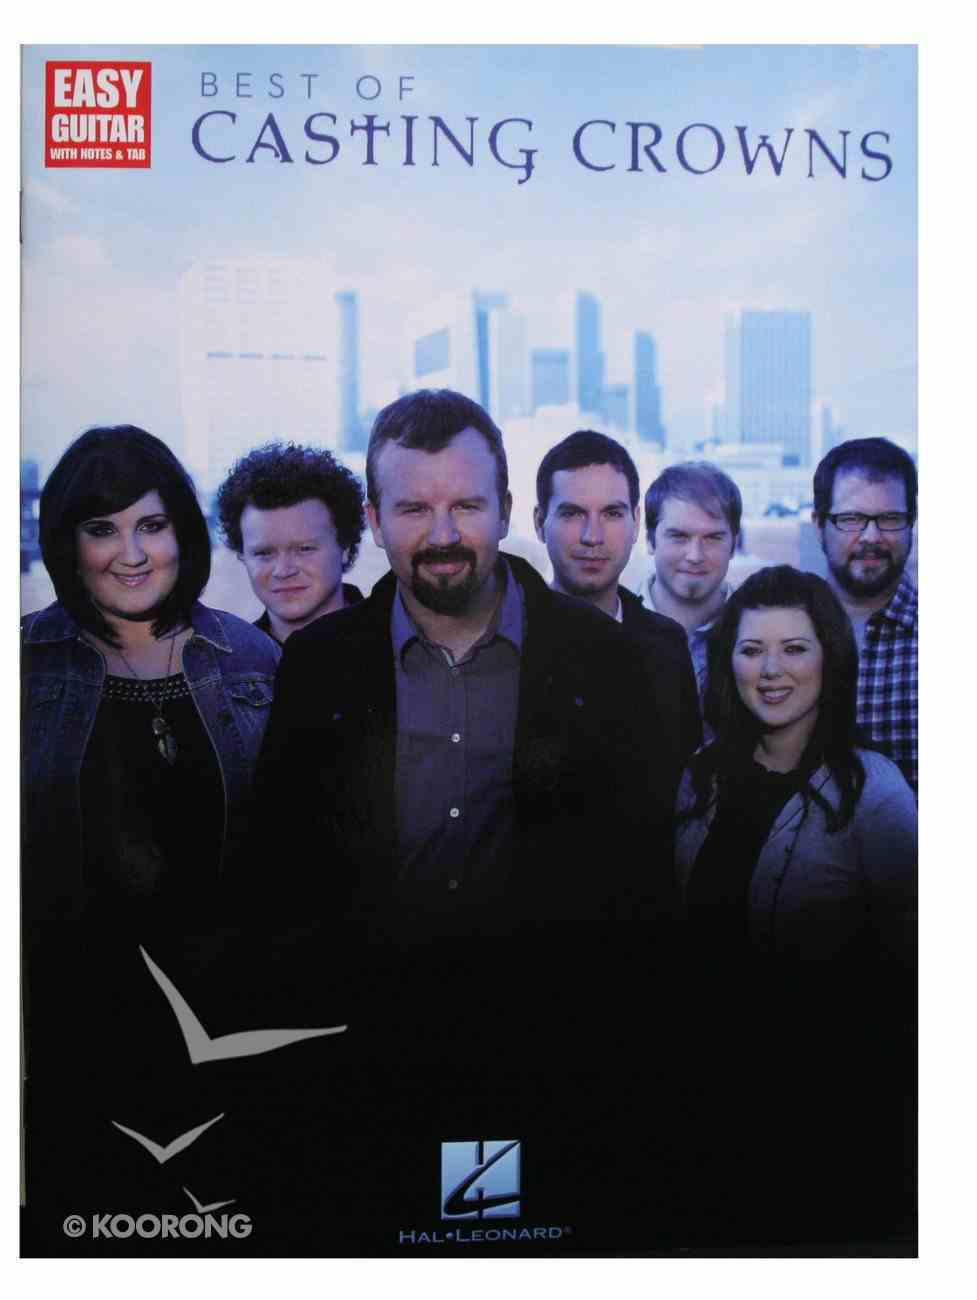 Best of Casting Crowns (Music Book) (Easy Guitar) Paperback